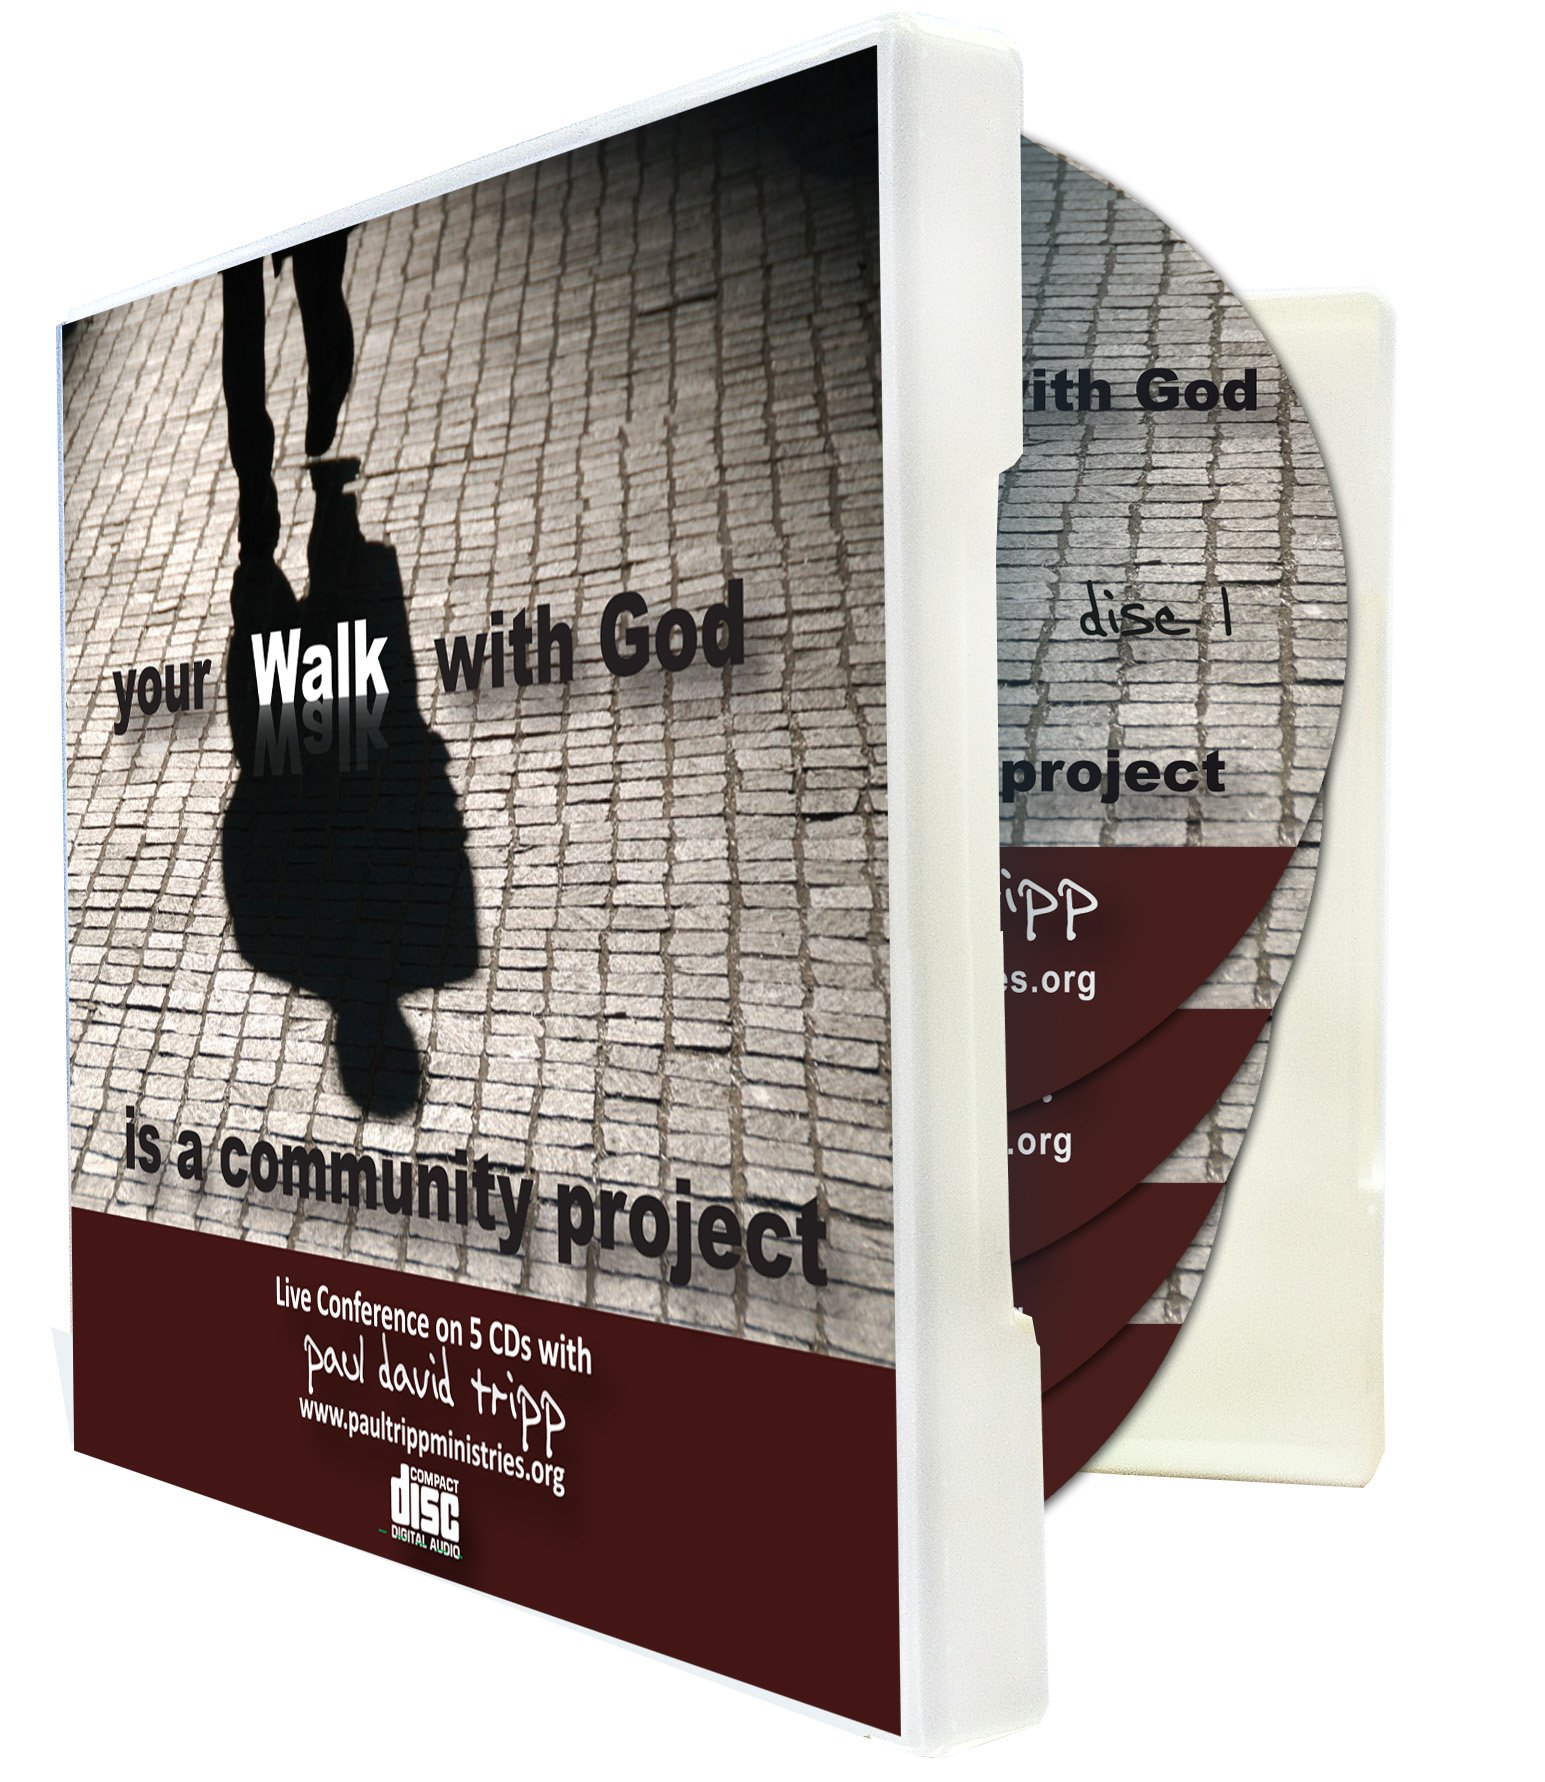 Your Walk with God Is a Community Project - A Live Conference on CD